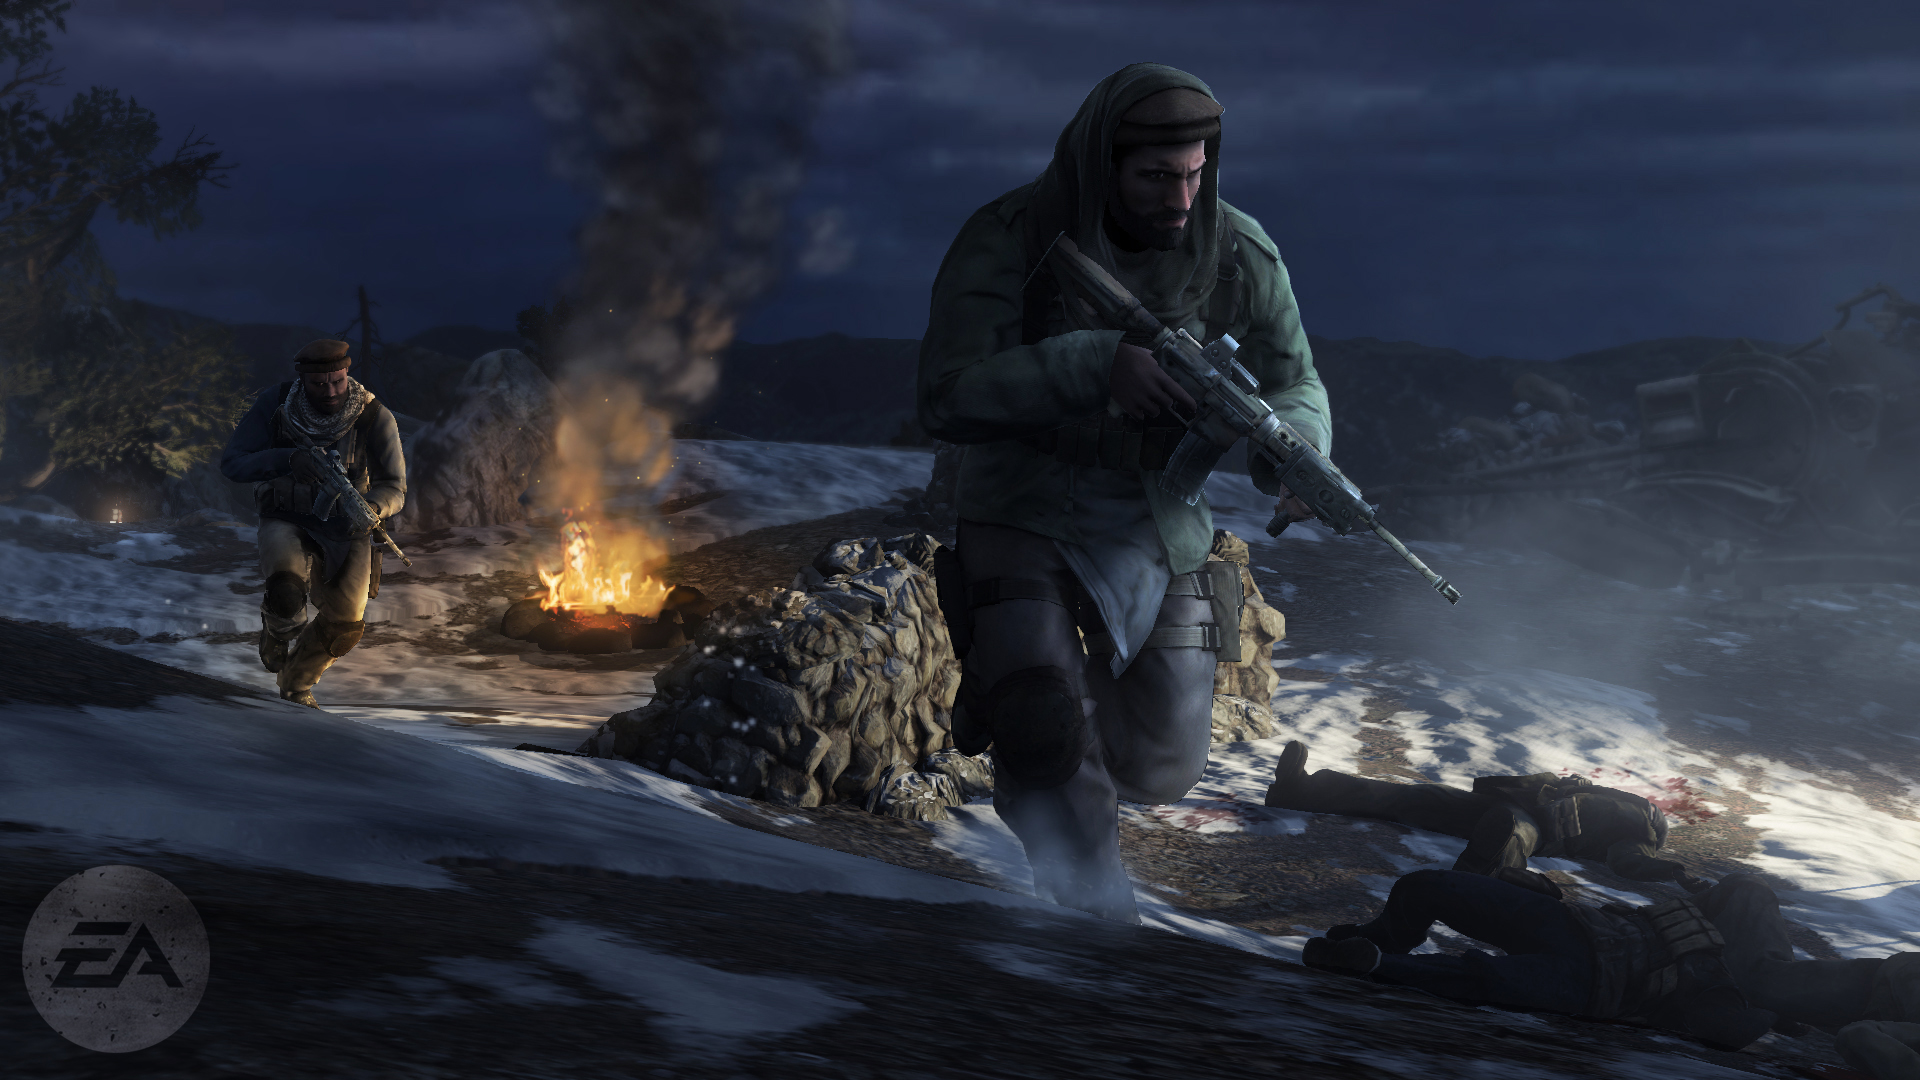 Medal Of Honor Release Date Is October 12, 2010